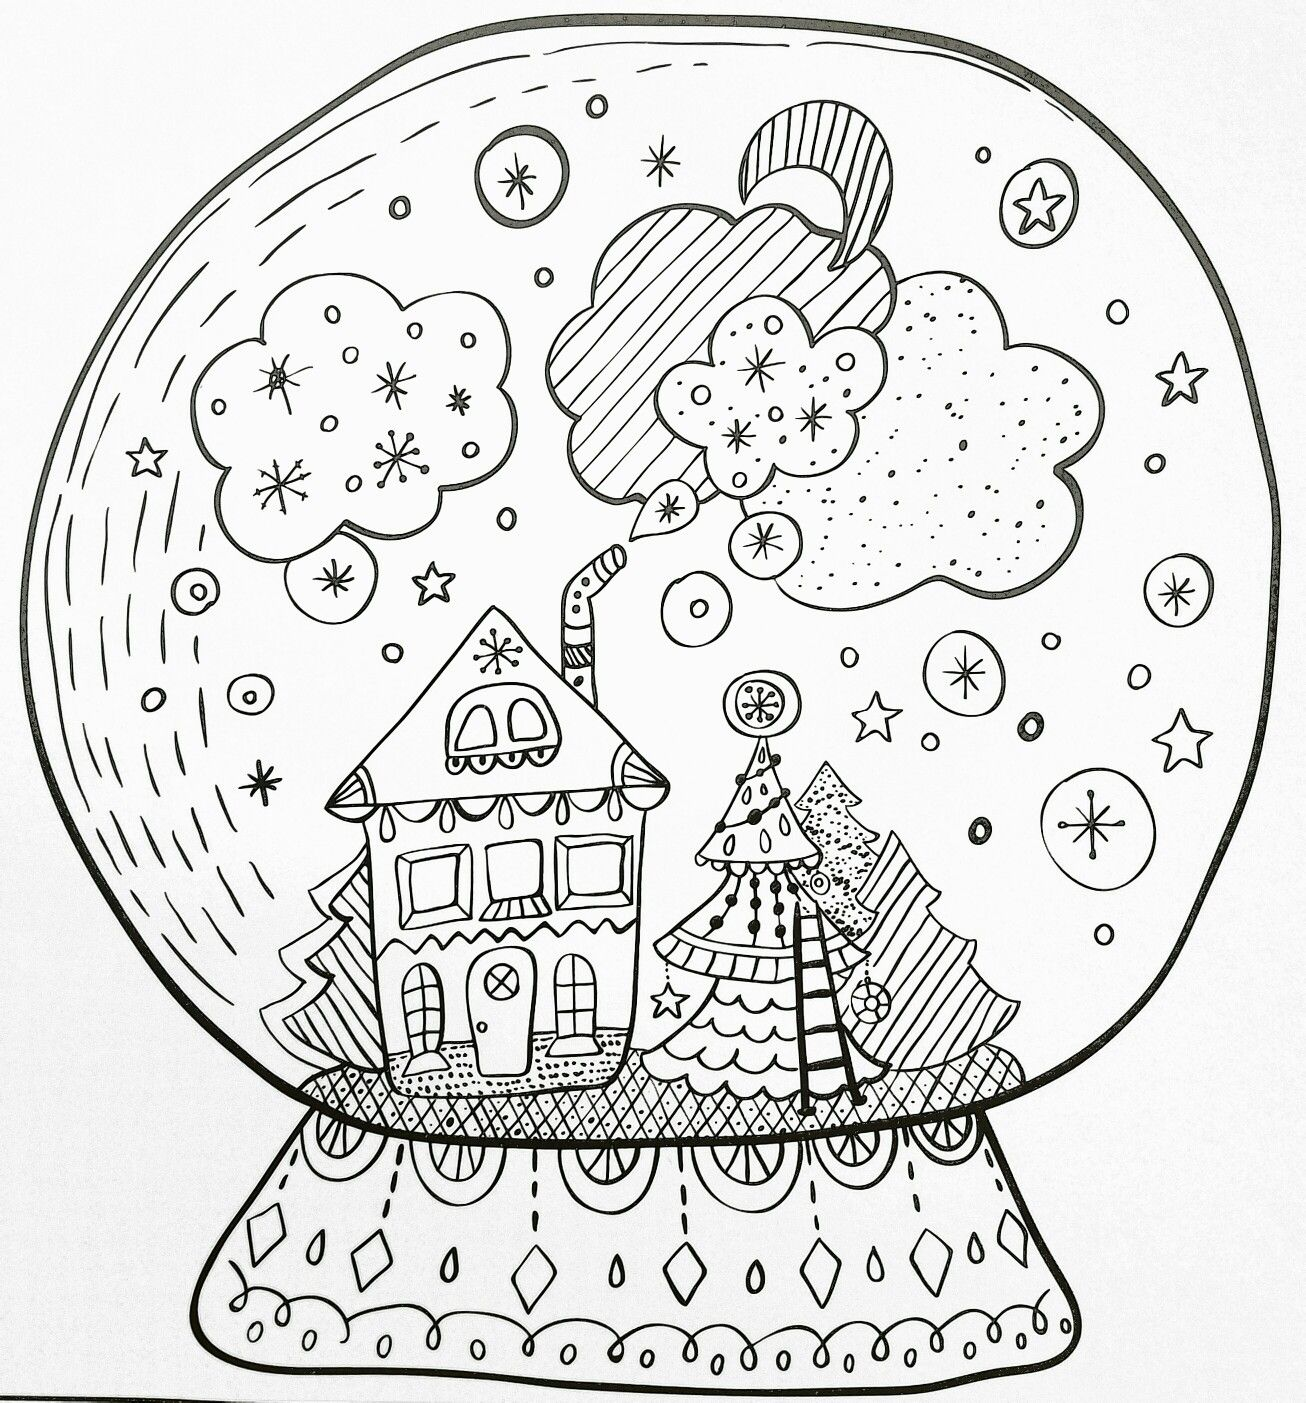 holiday adult coloring page | christmas snowglobe | winter fun | 1st